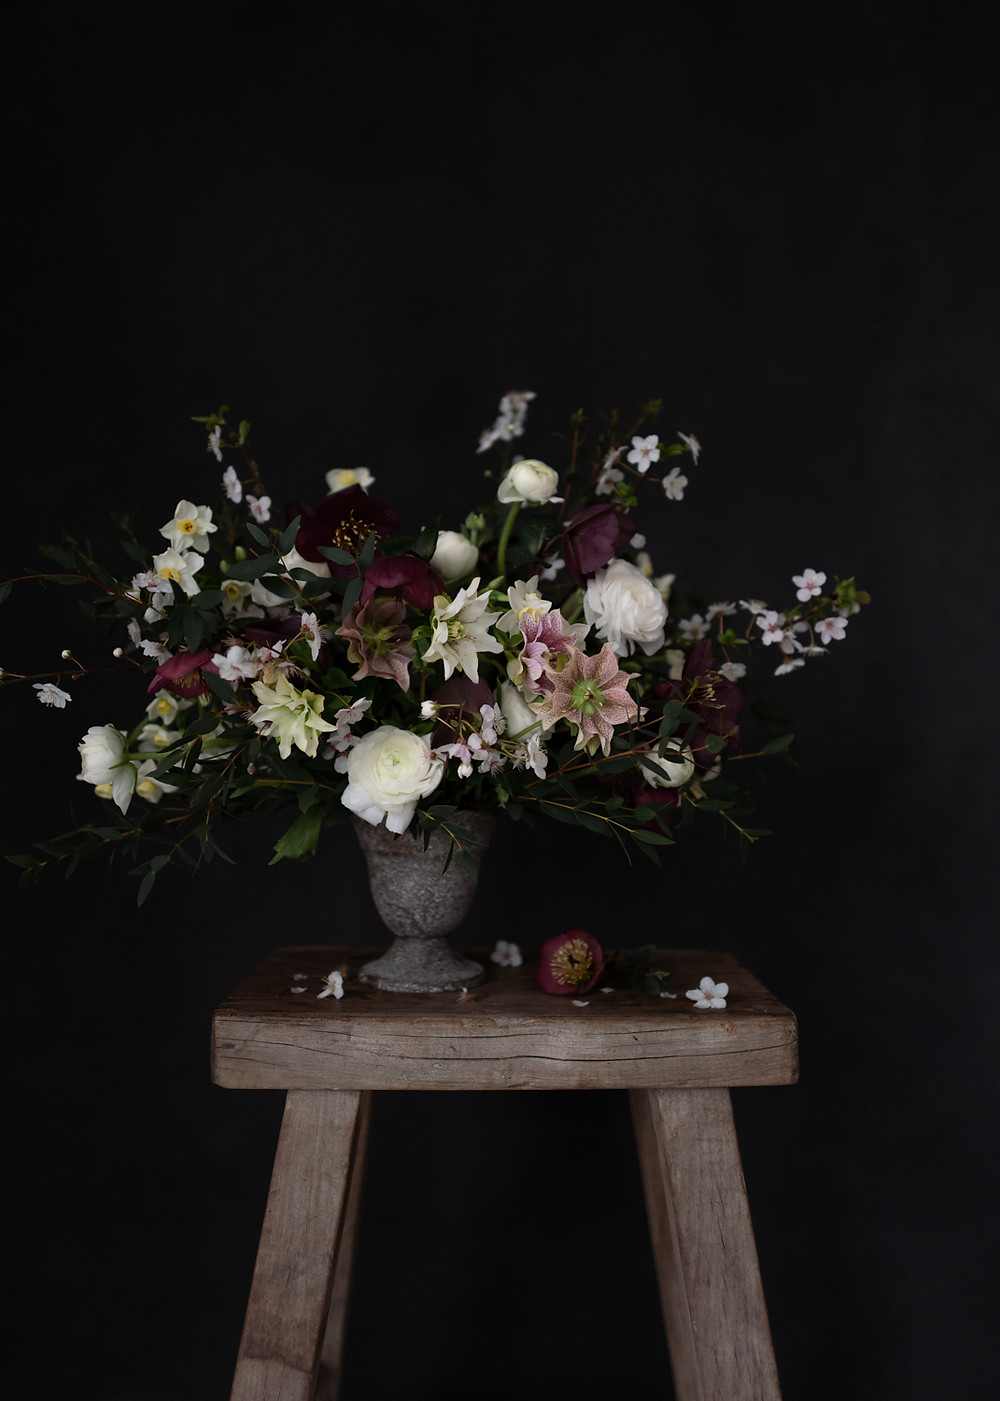 moody blooms byt Julia Smith, photographer, Humphrey & Grace